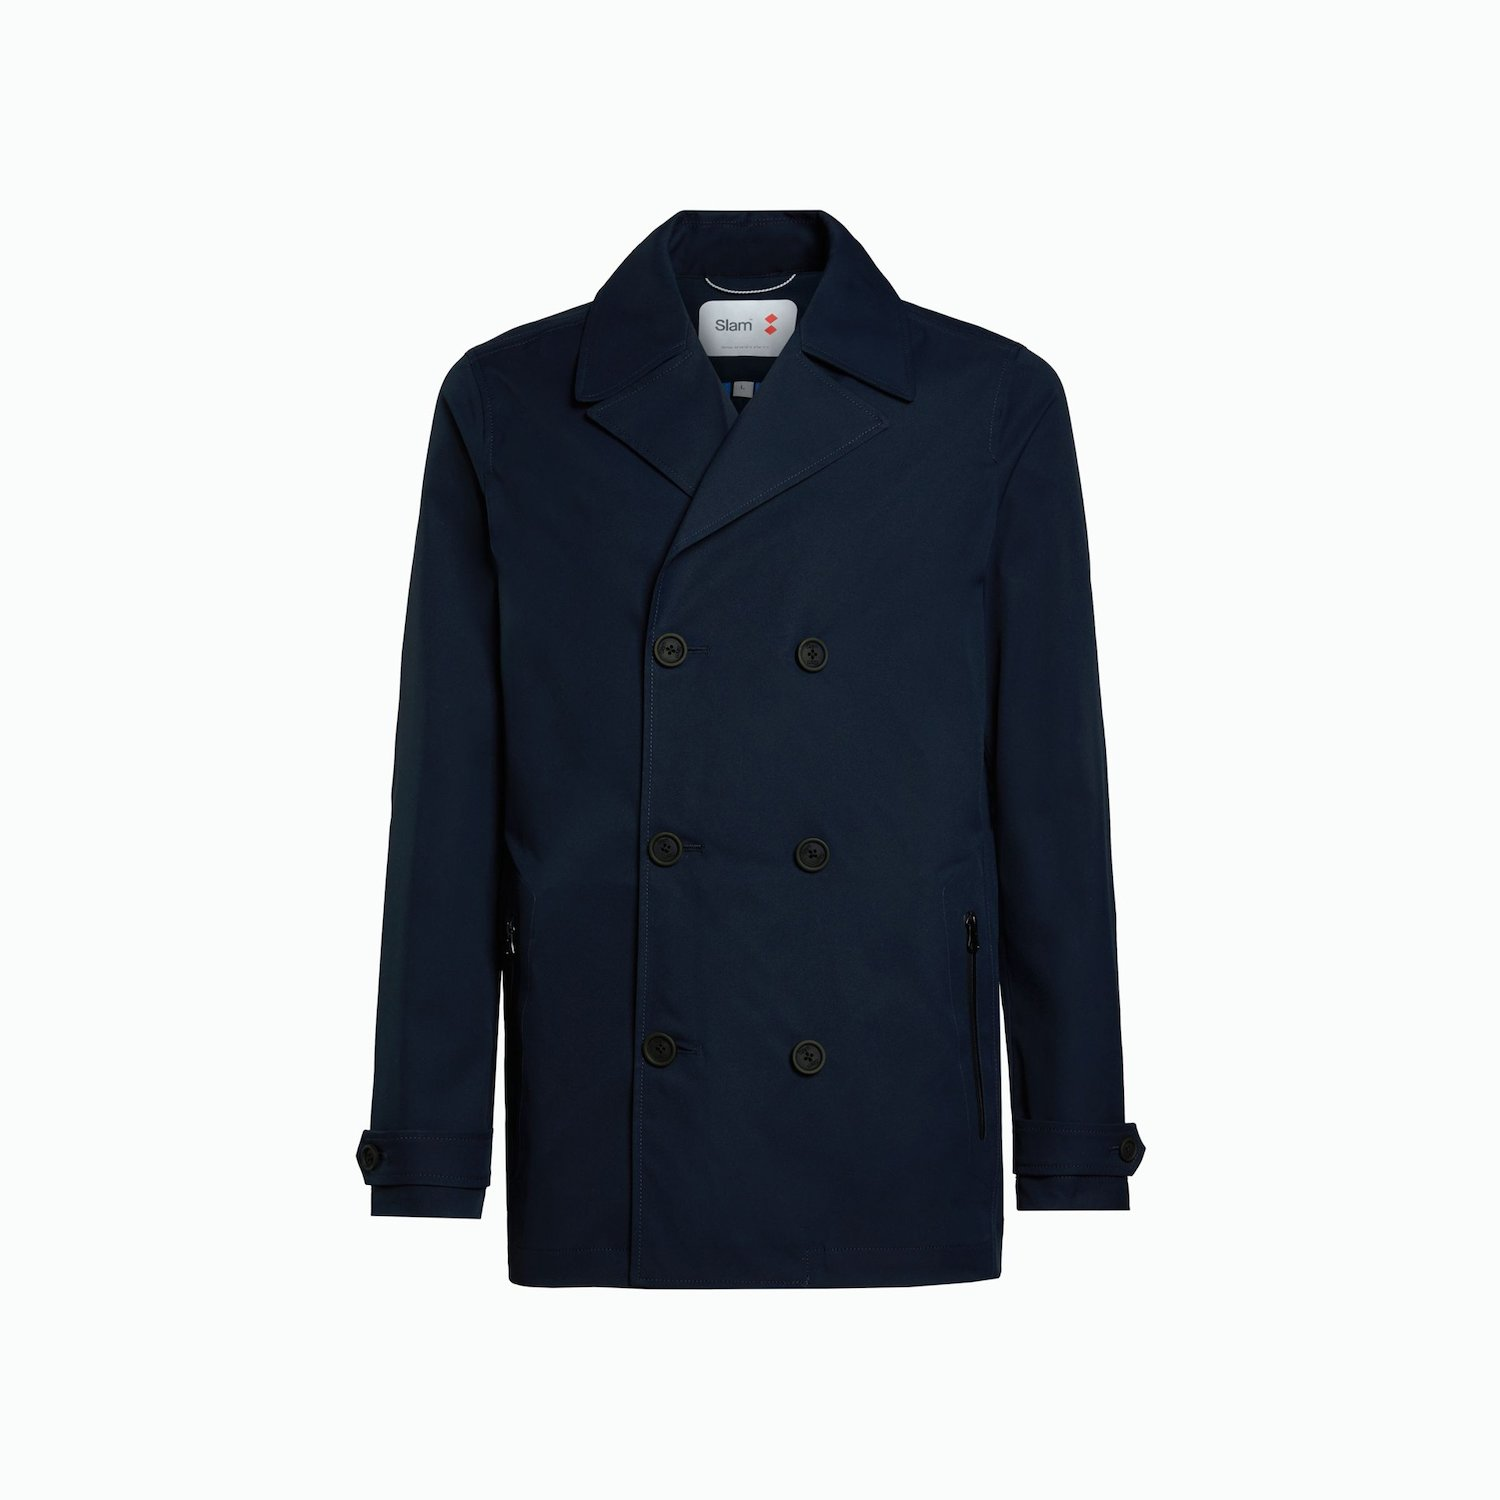 Jacket A66 - Marinenblau